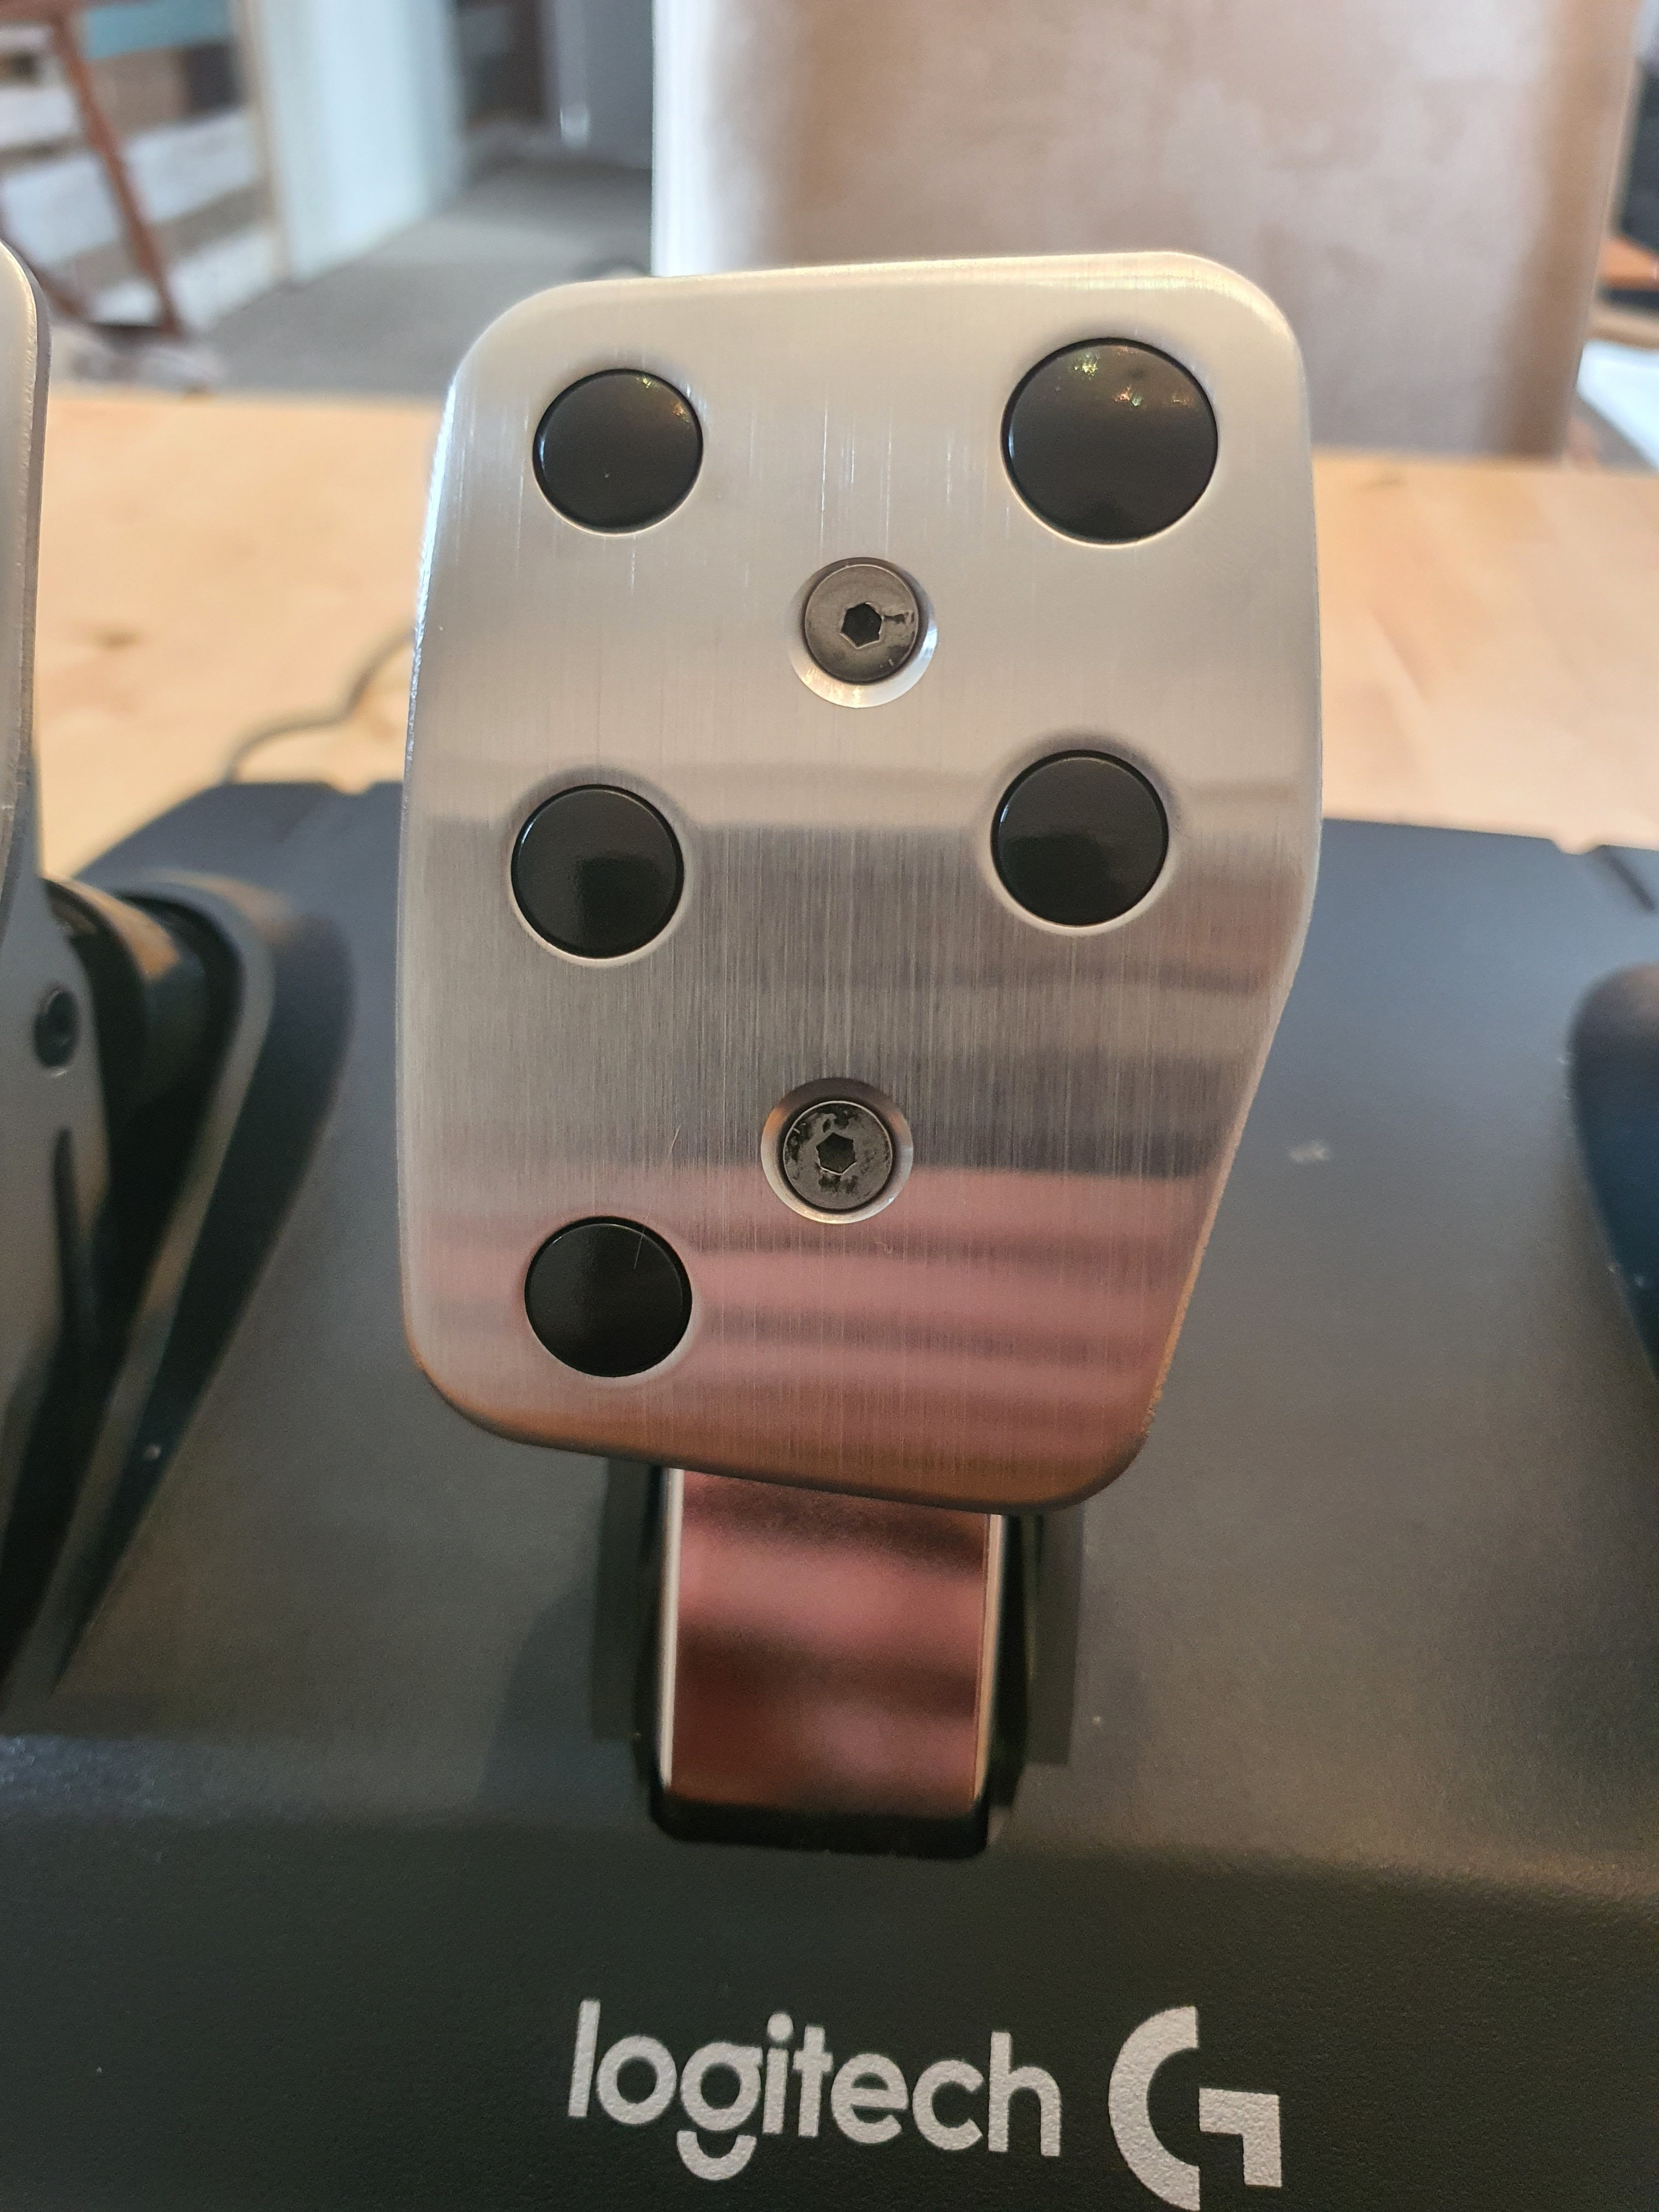 The brake pedal on a G920 set